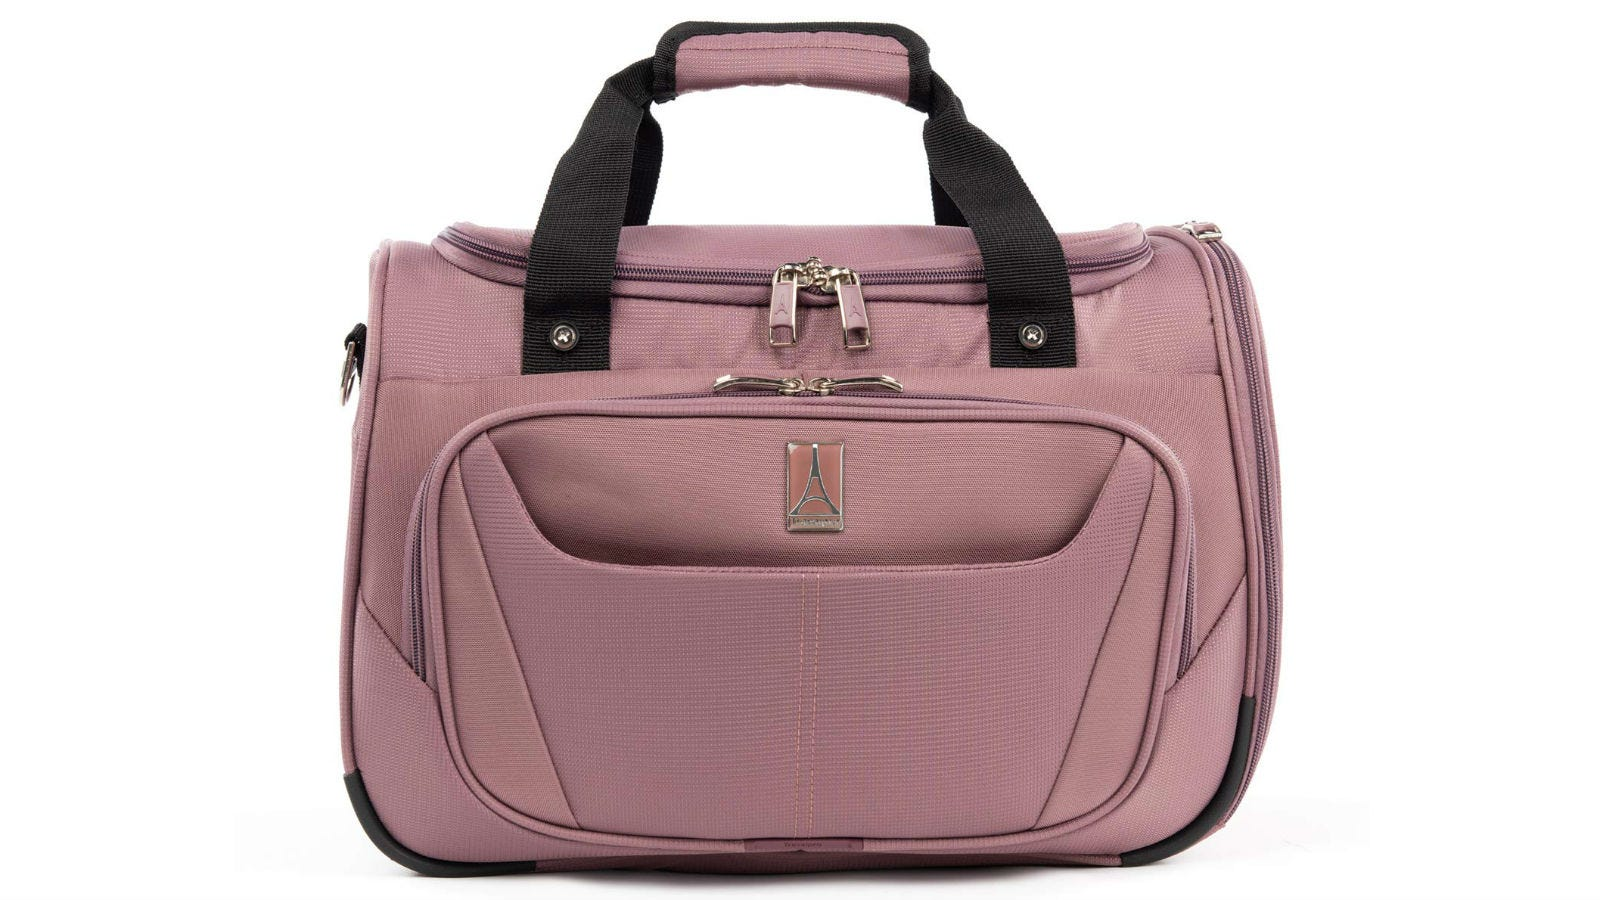 The TravelPro Luggage MaxLite Lightweight Carry-On Under Seat Tote in dusty rose.